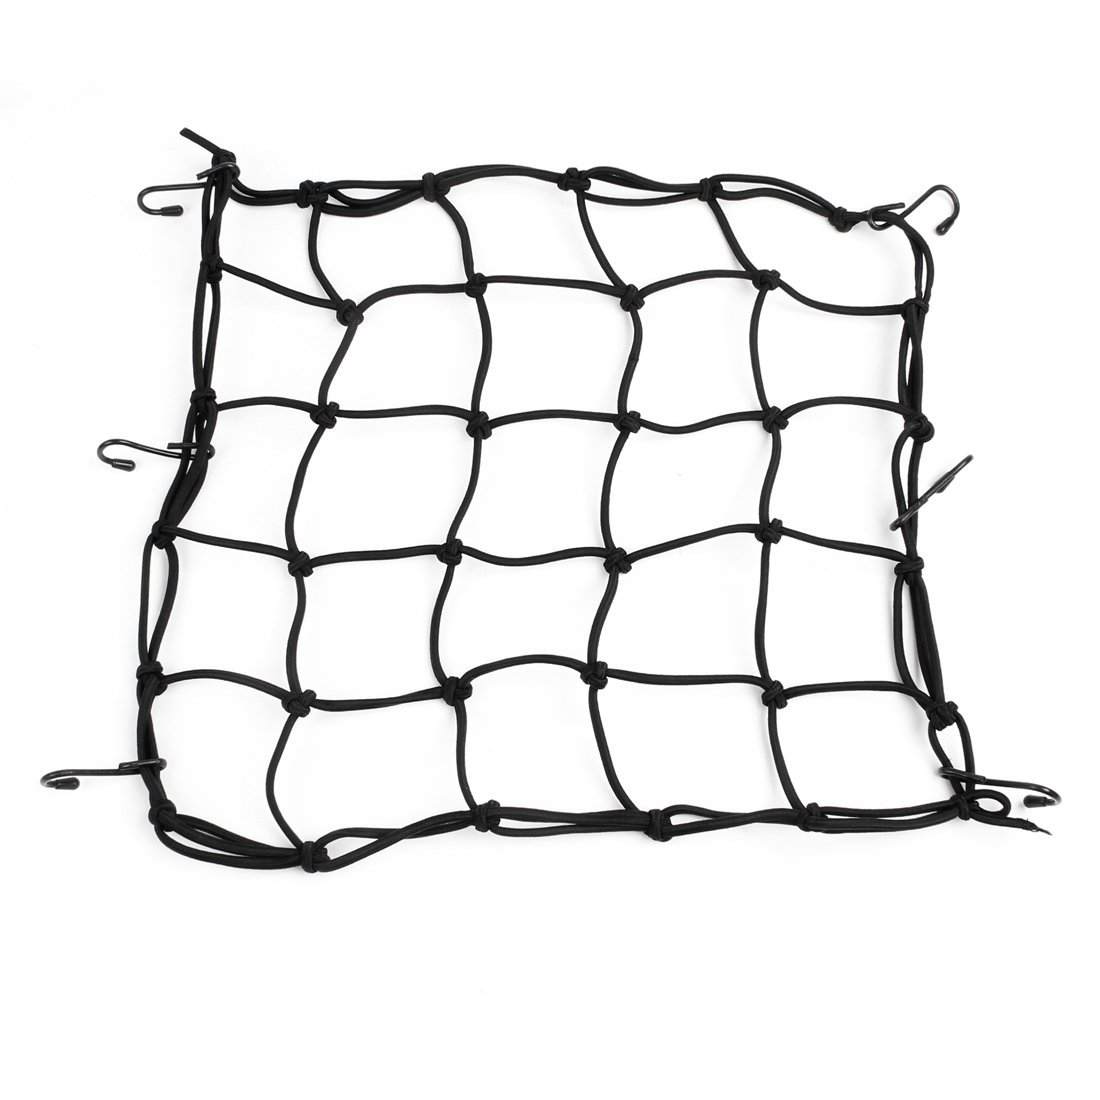 SODIAL(R) Motorcycle Auto Car Black Bungee 6 Hook Designed Luggage Package Flexible Net 032117